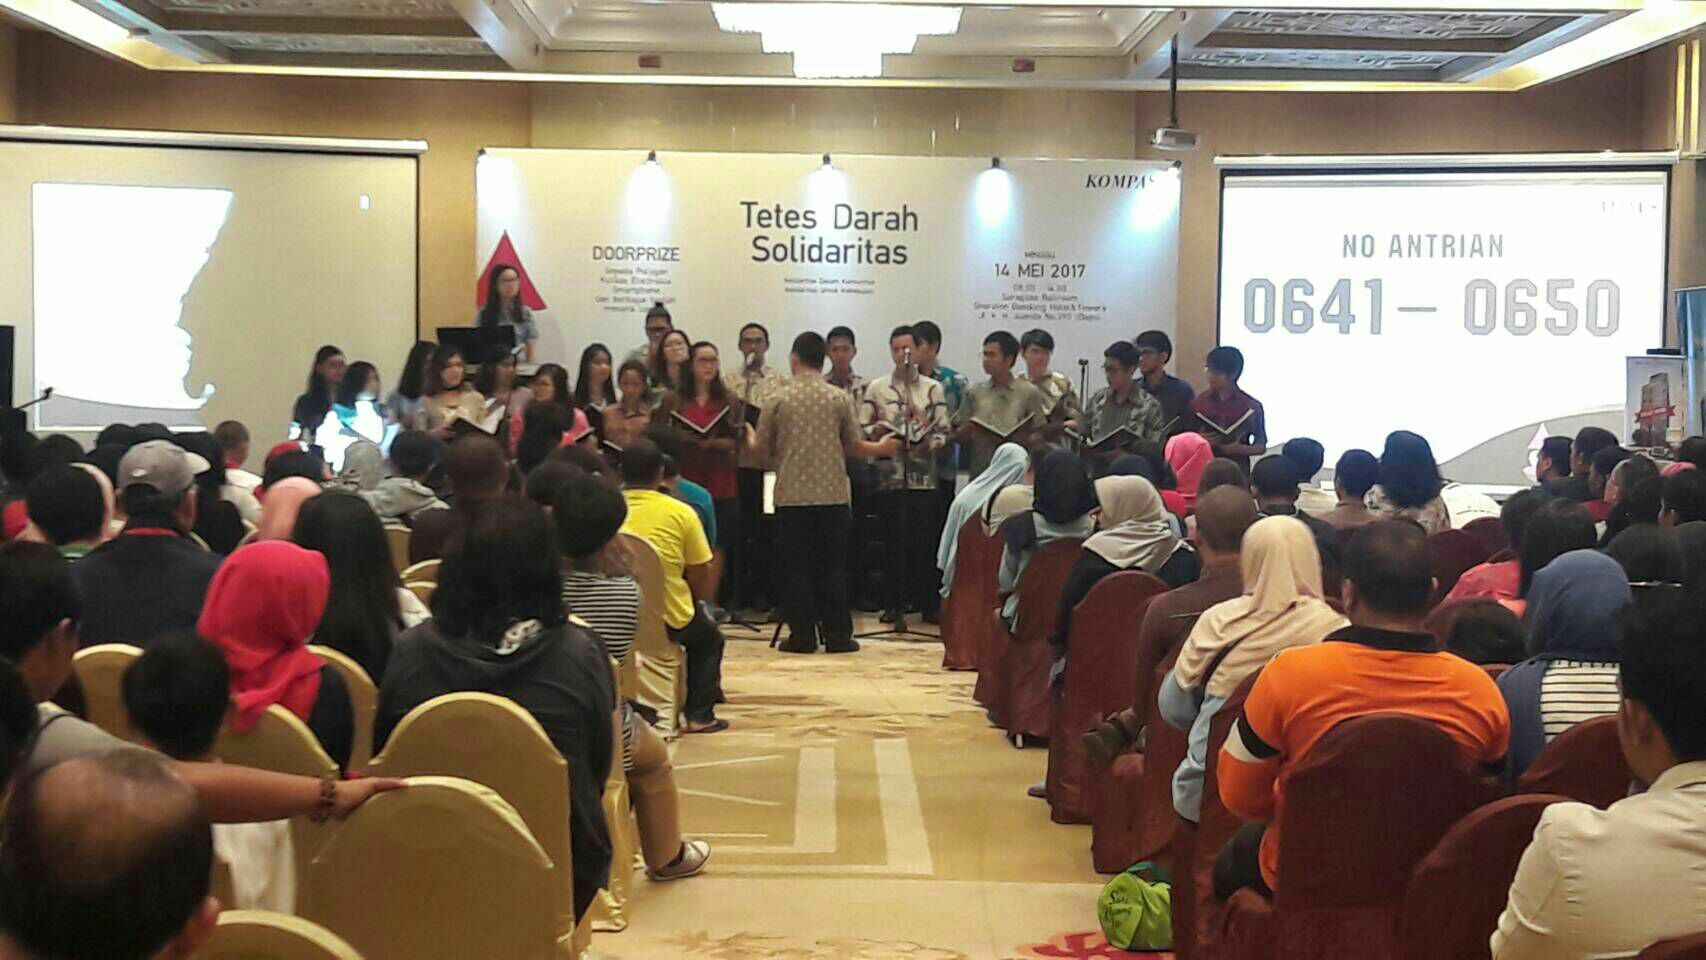 PSM-ITB on Stage: Donor Darah KOMPAS